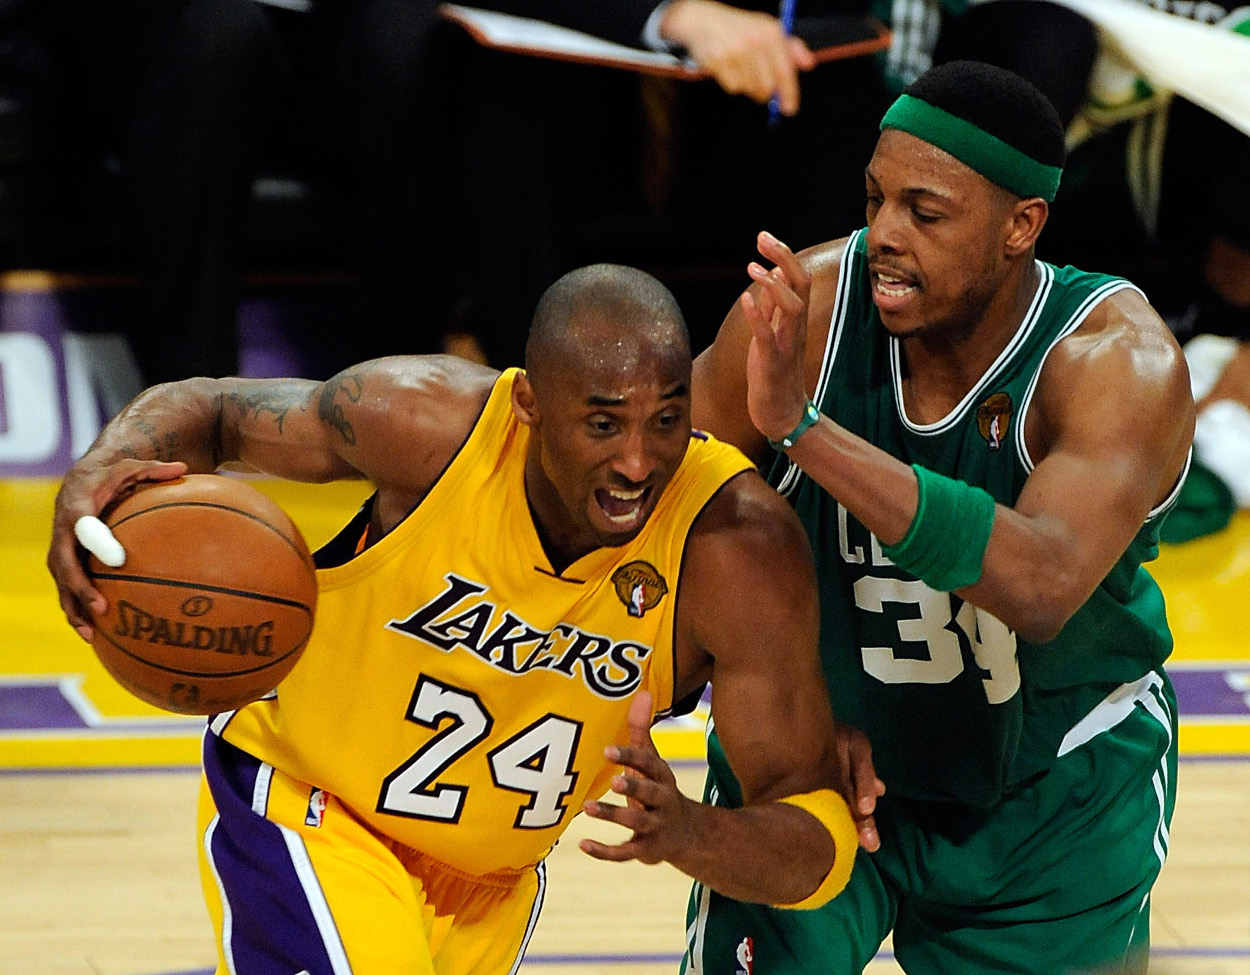 How Many NBA Championships Have the Lakers and Celtics Won?